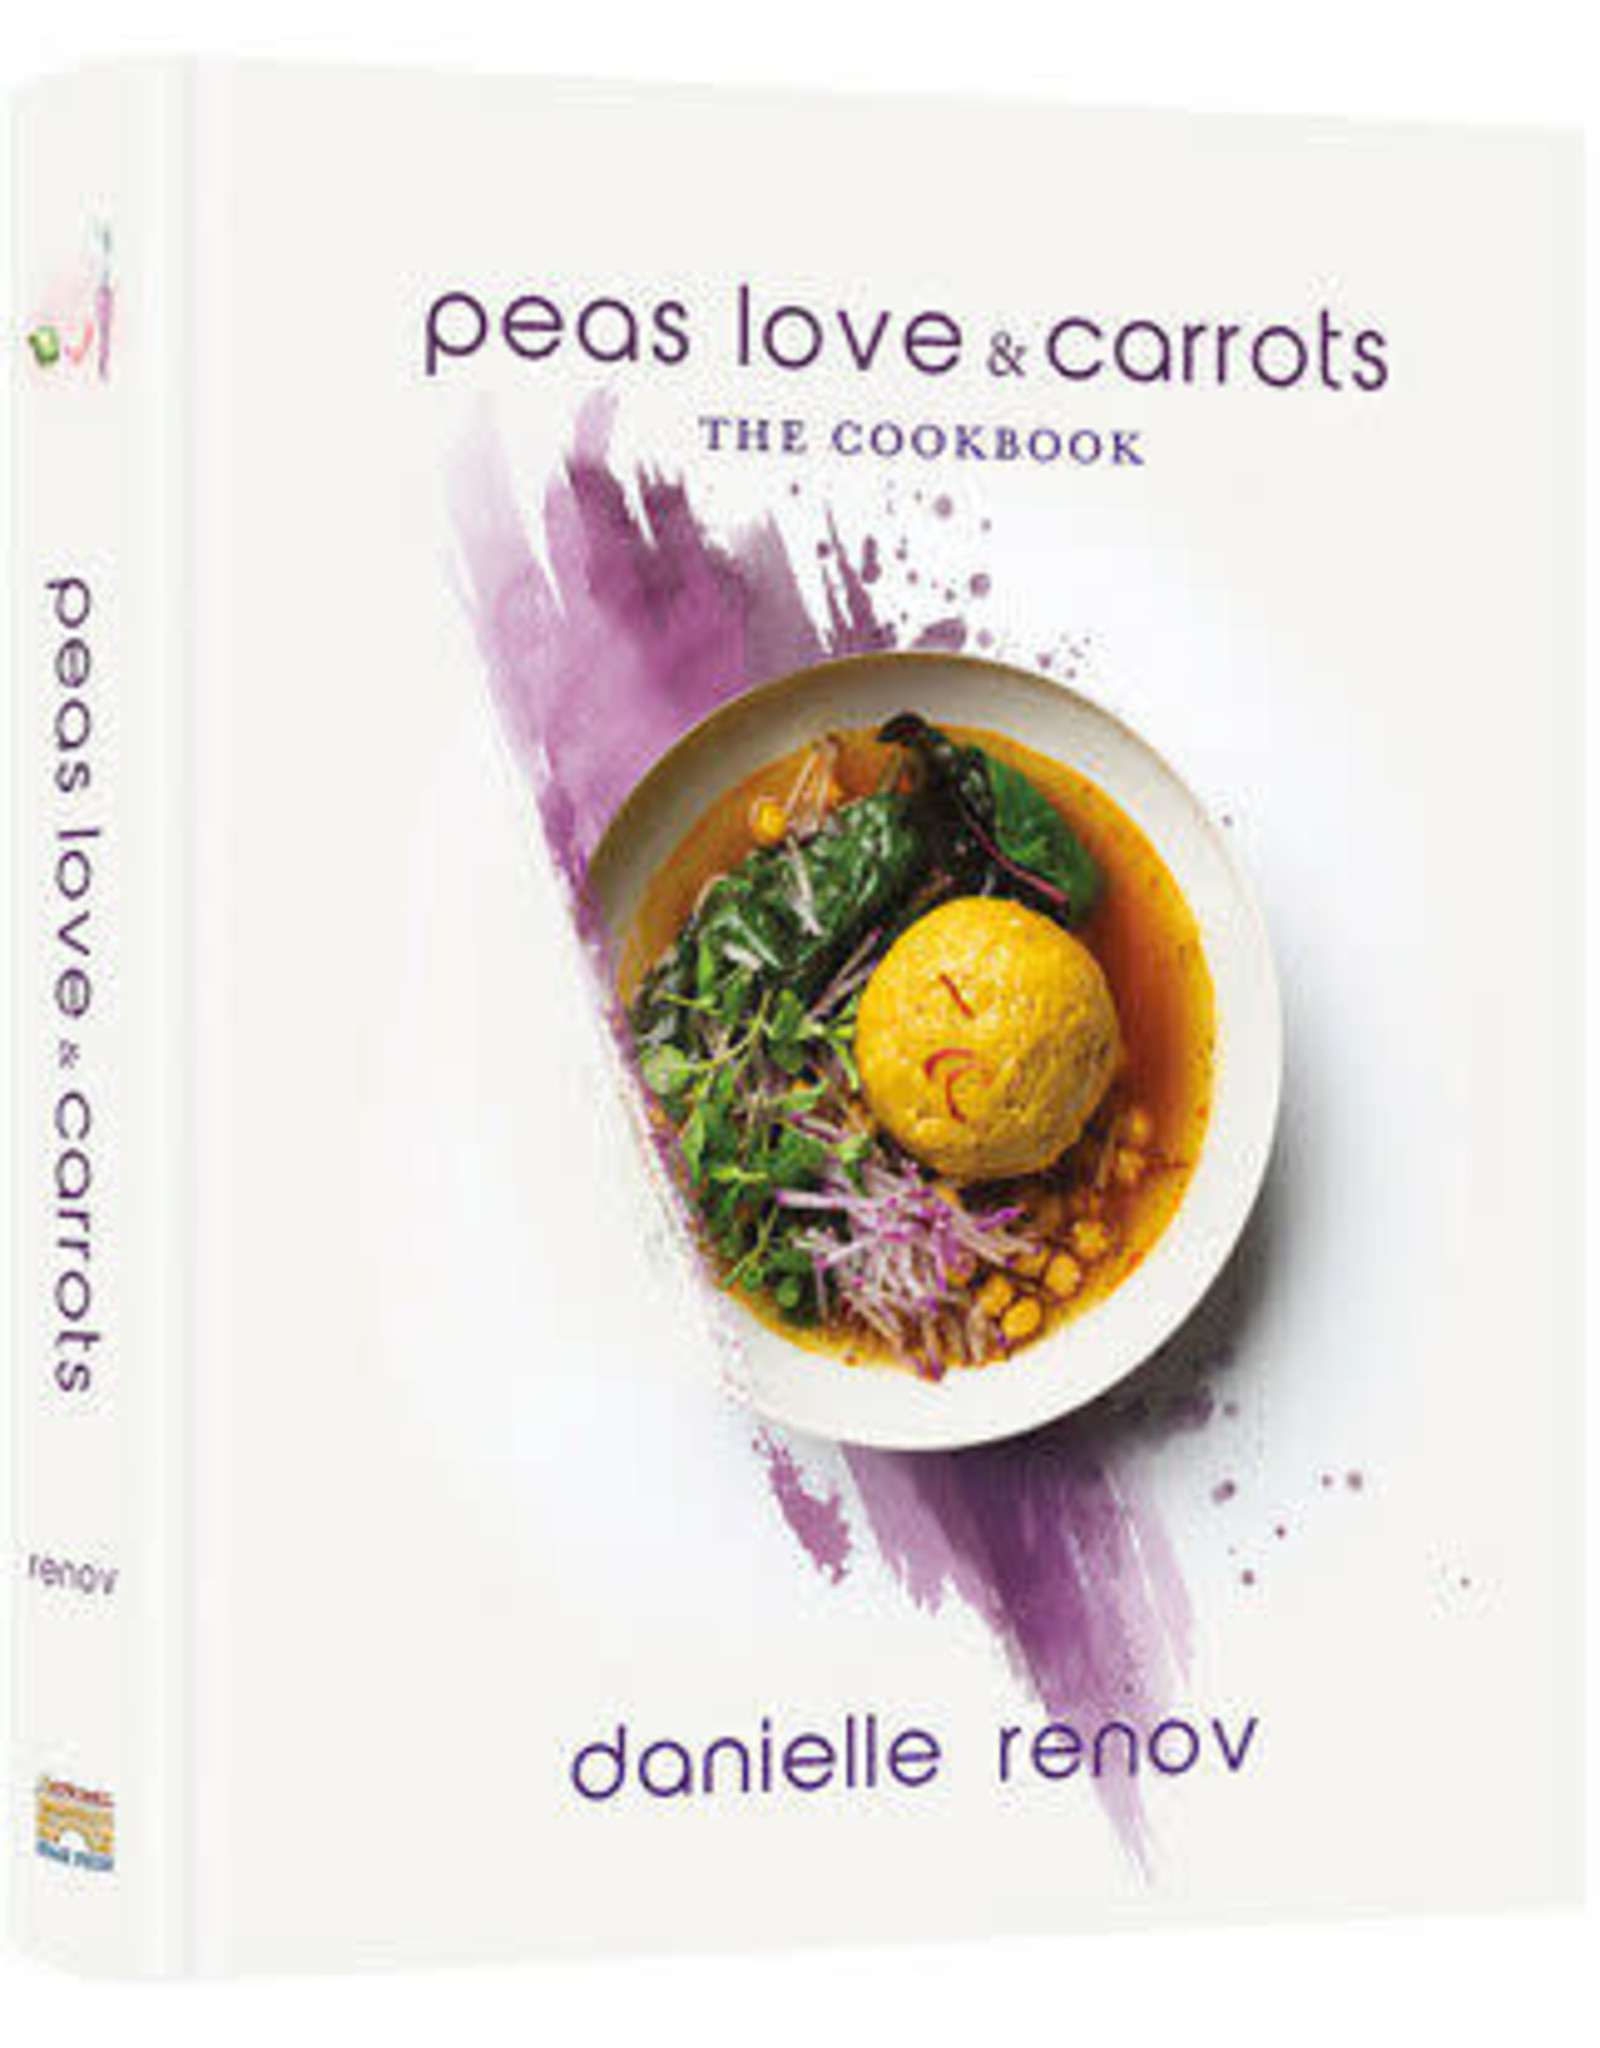 Peas, Love and Carrots - The Cookbook